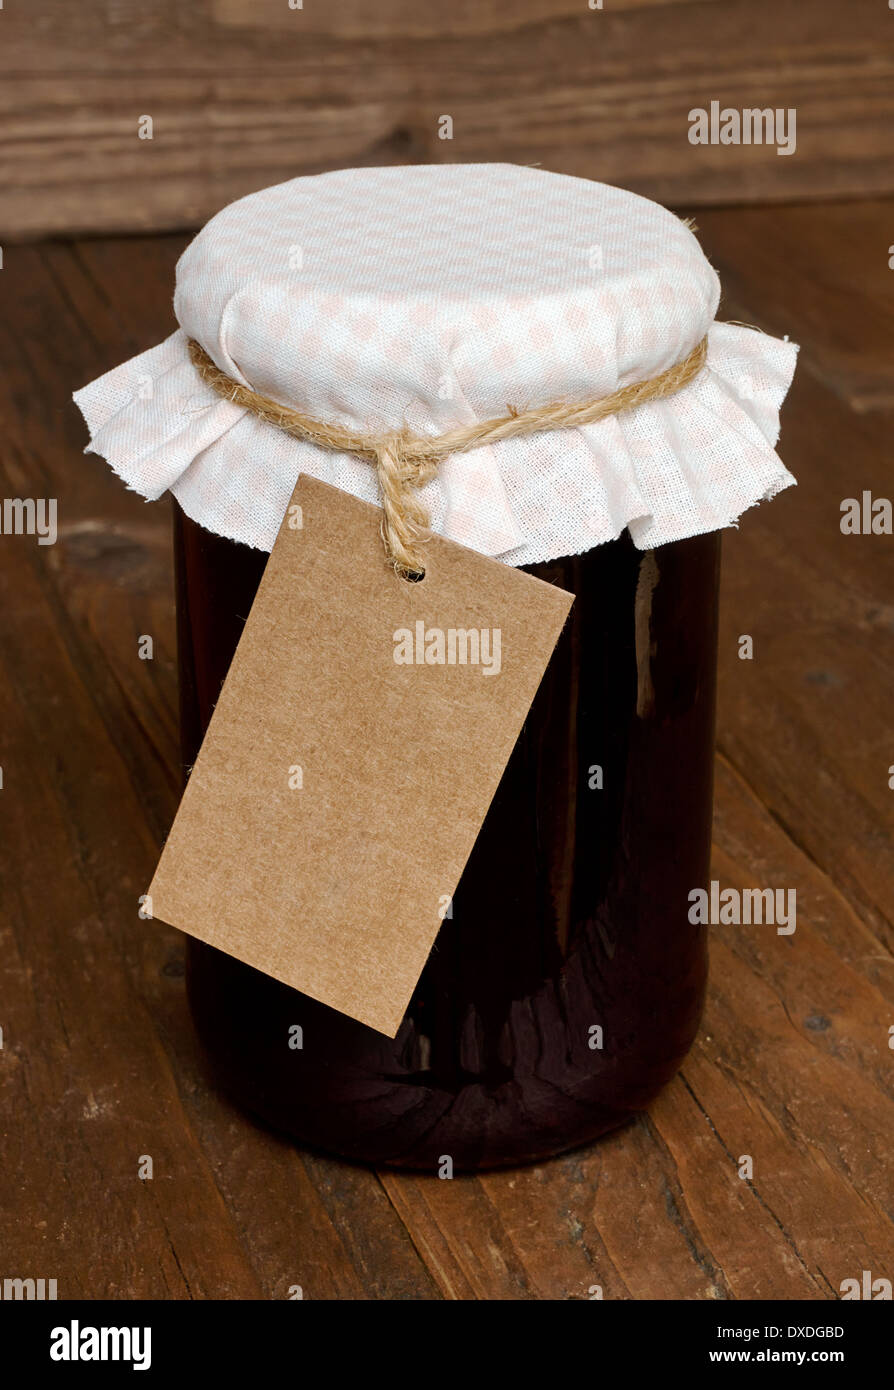 Mixed fruit jam in a glass jar with traditional cloth lid and blank label for insertion of your message or company branding. - Stock Image